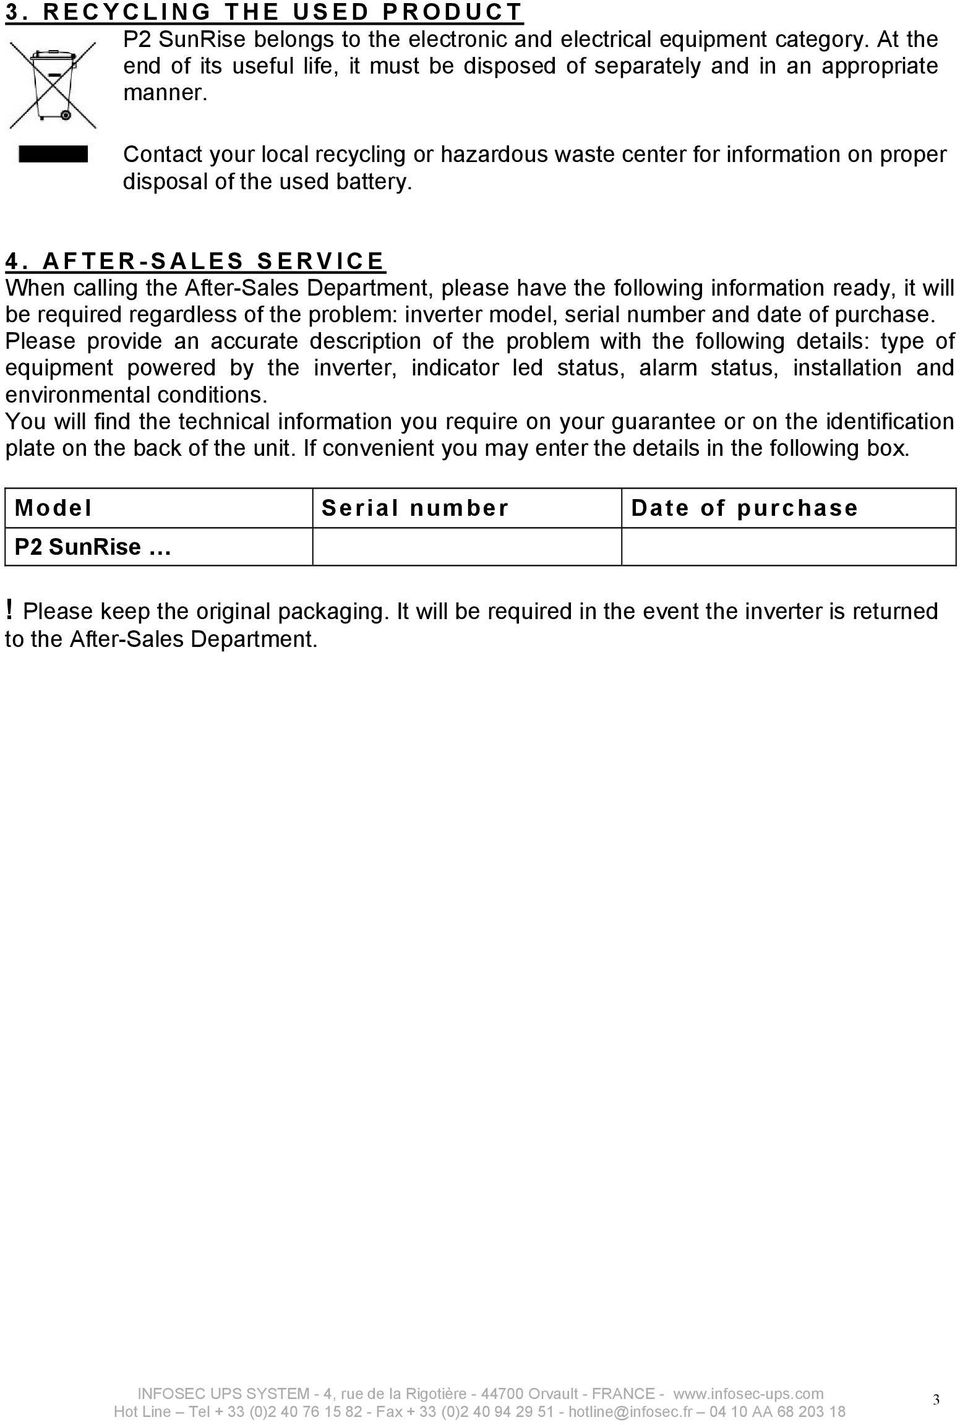 AFTER-SALES SERVICE When calling the After-Sales Department, please have the following information ready, it will be required regardless of the problem: inverter model, serial number and date of